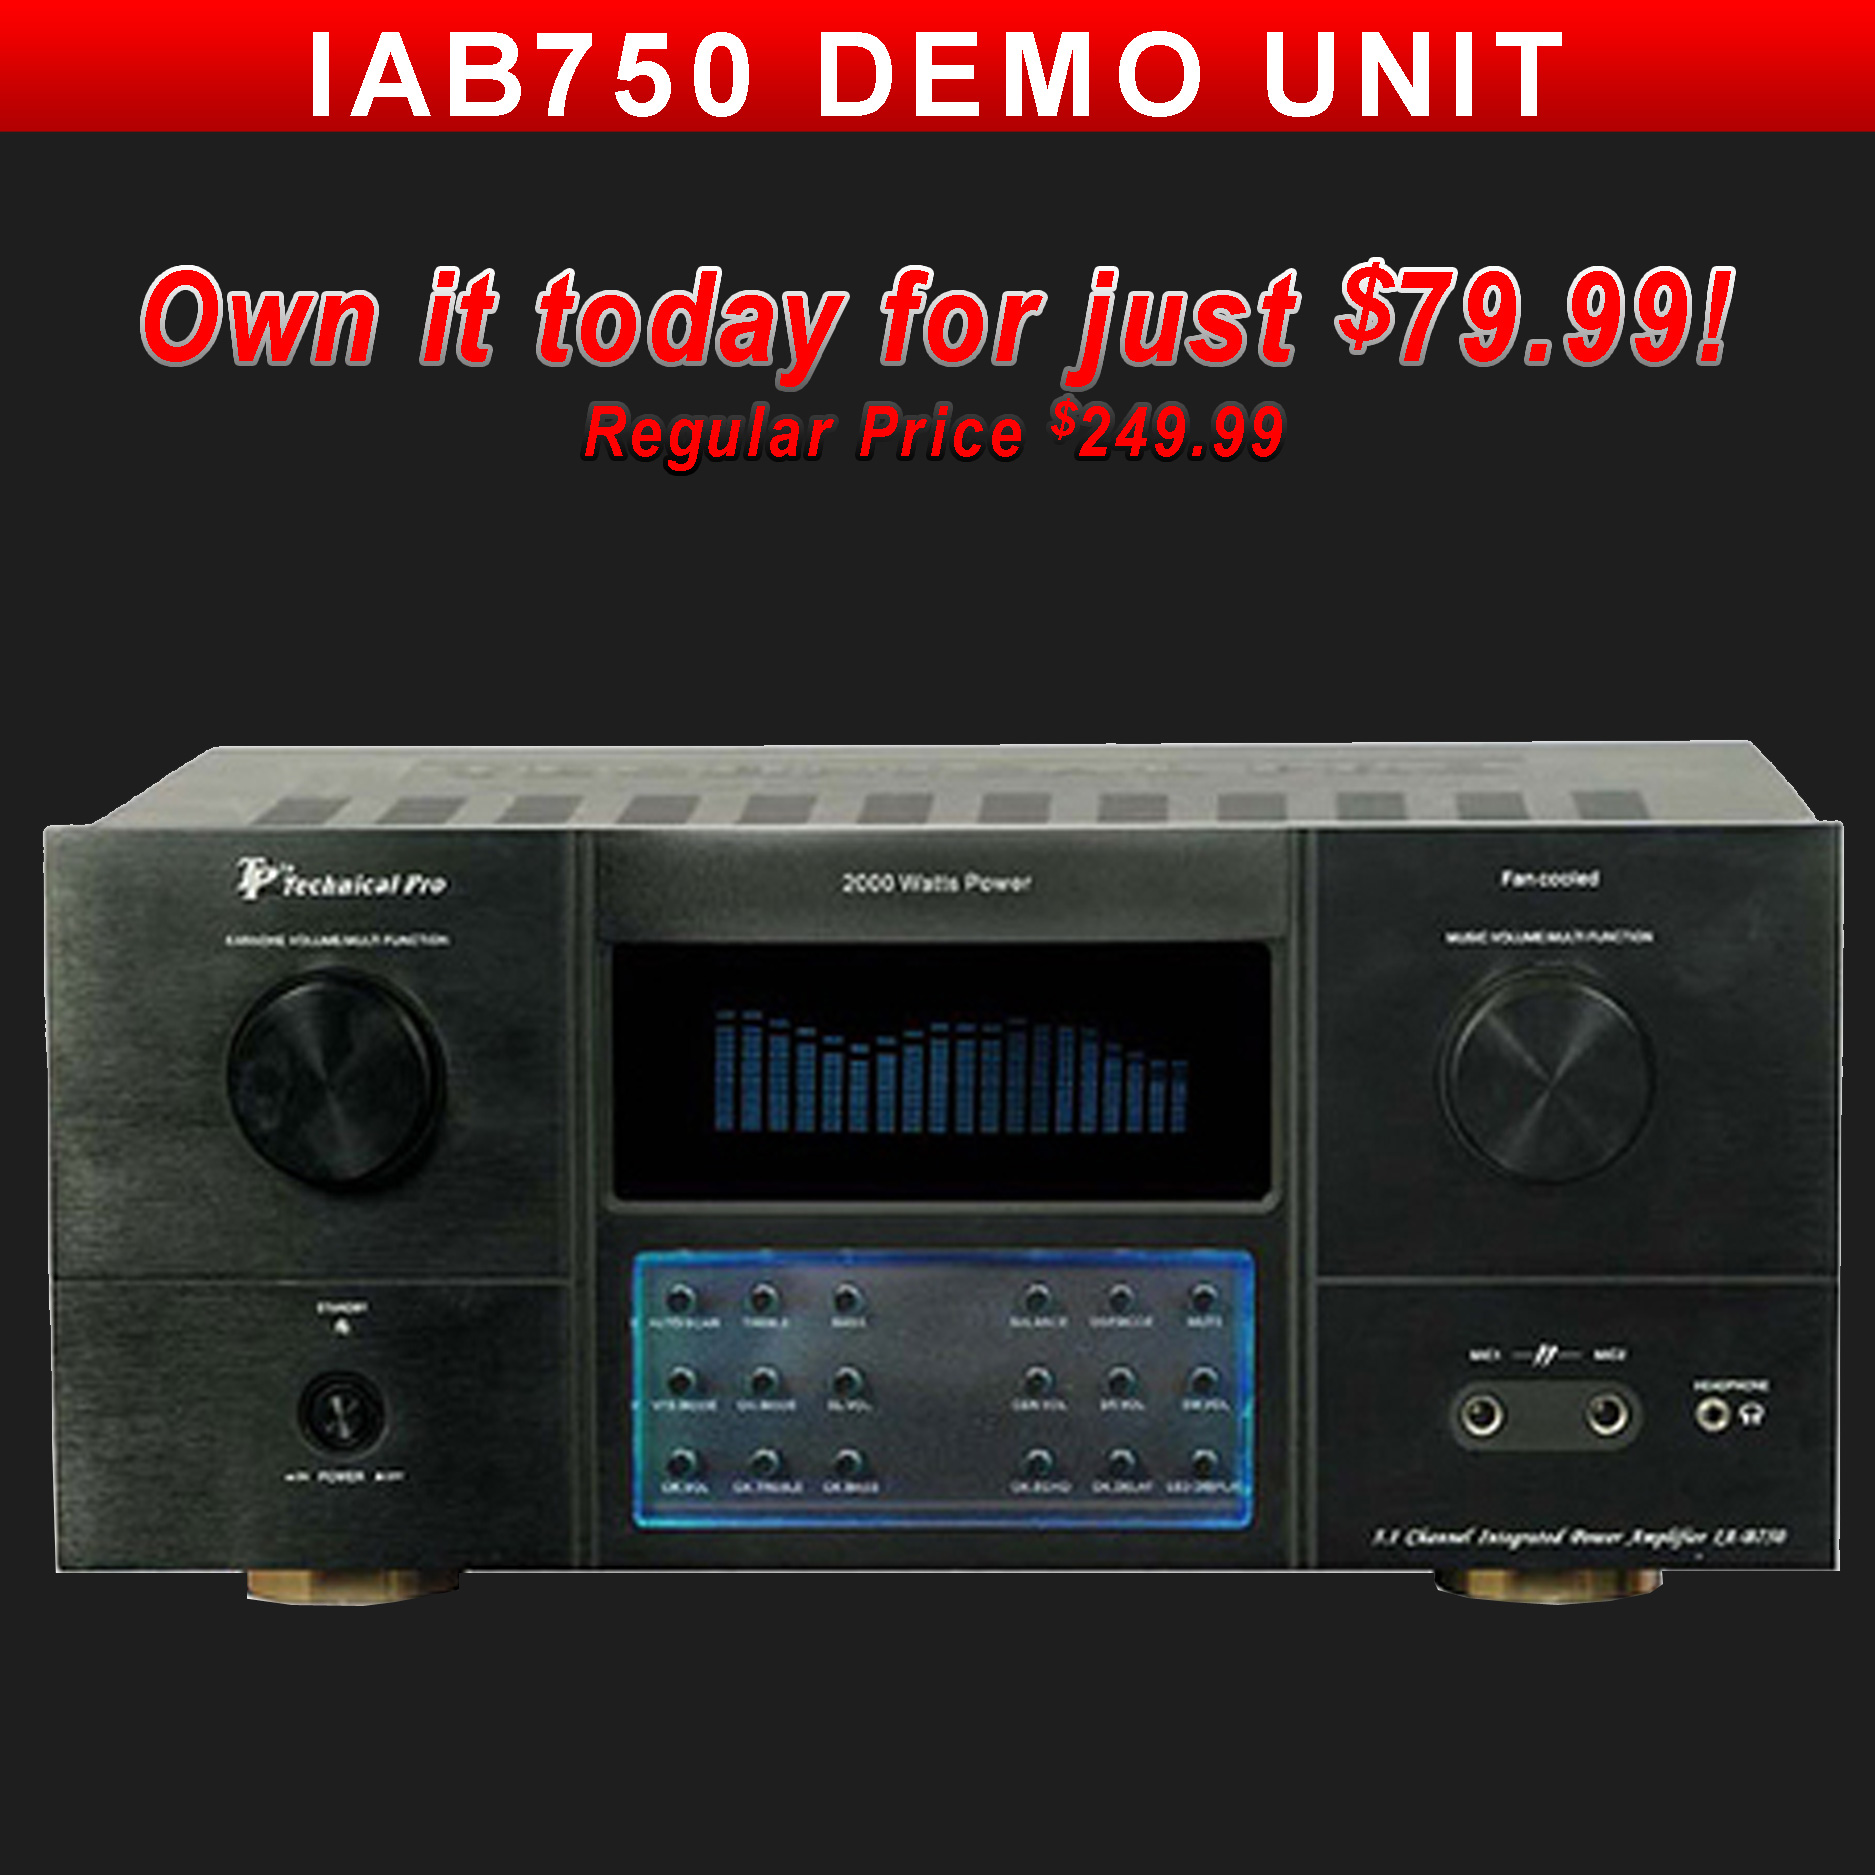 Technical Pro IAB75 Demo Unit